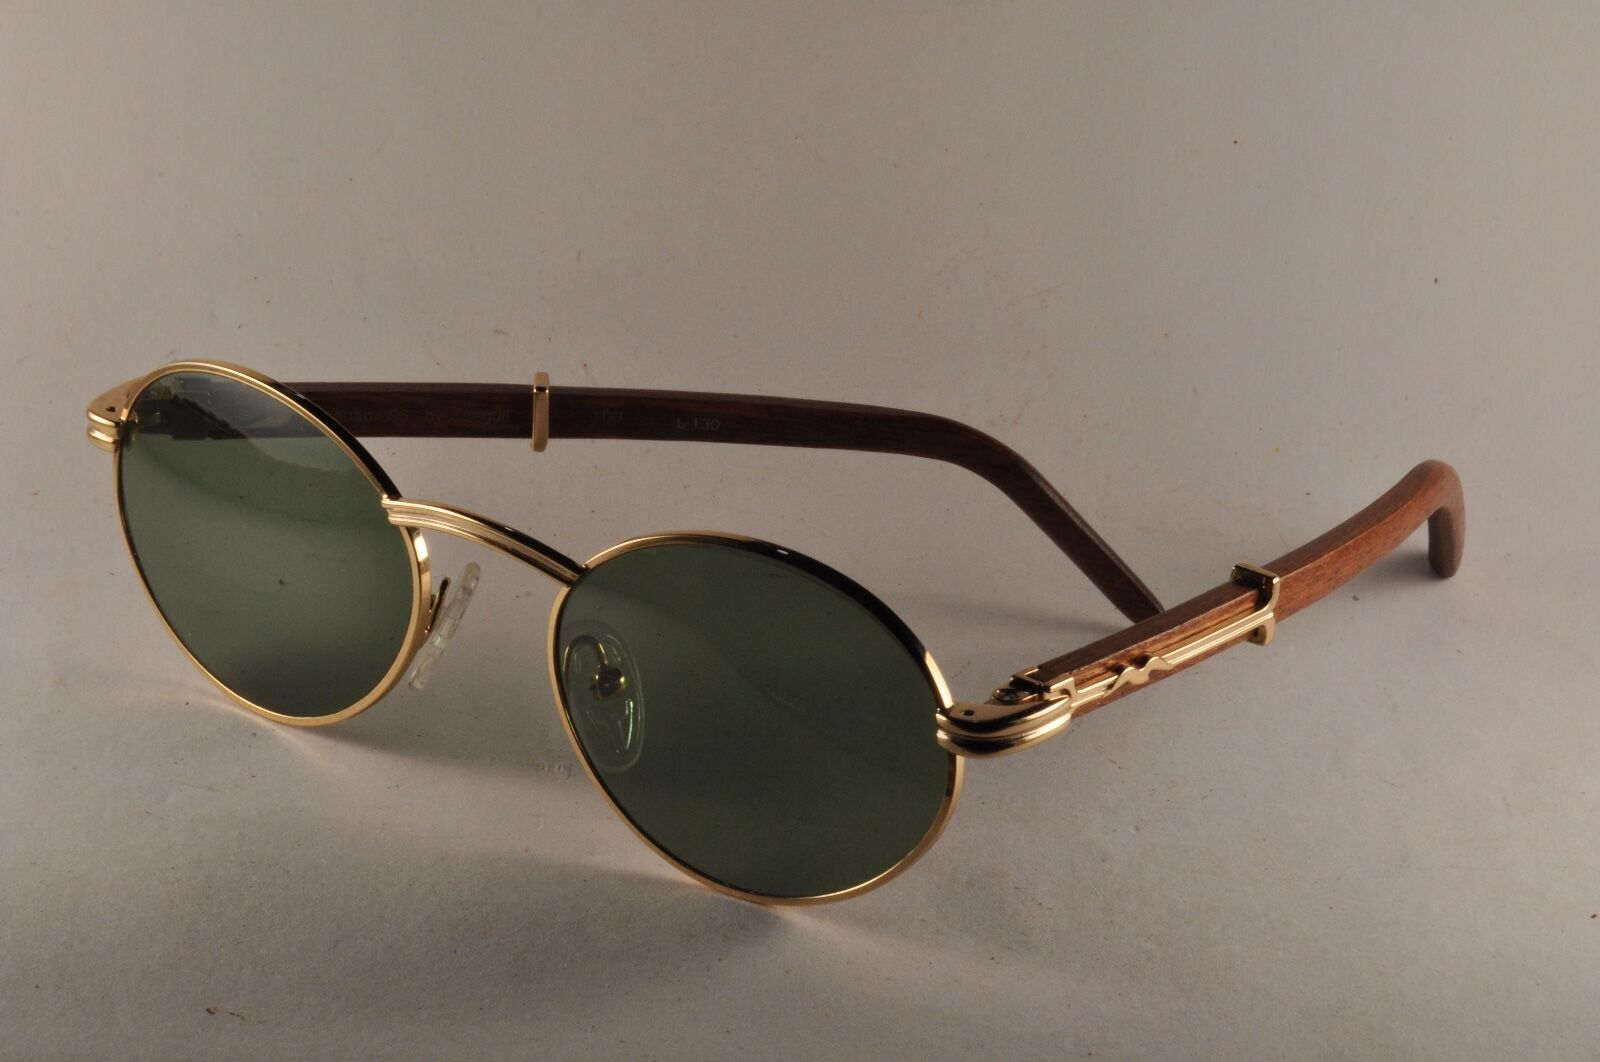 Vintage Sunglasses Kashab 06 by Seagull WOOD 51[ ]19 -- similar giverny